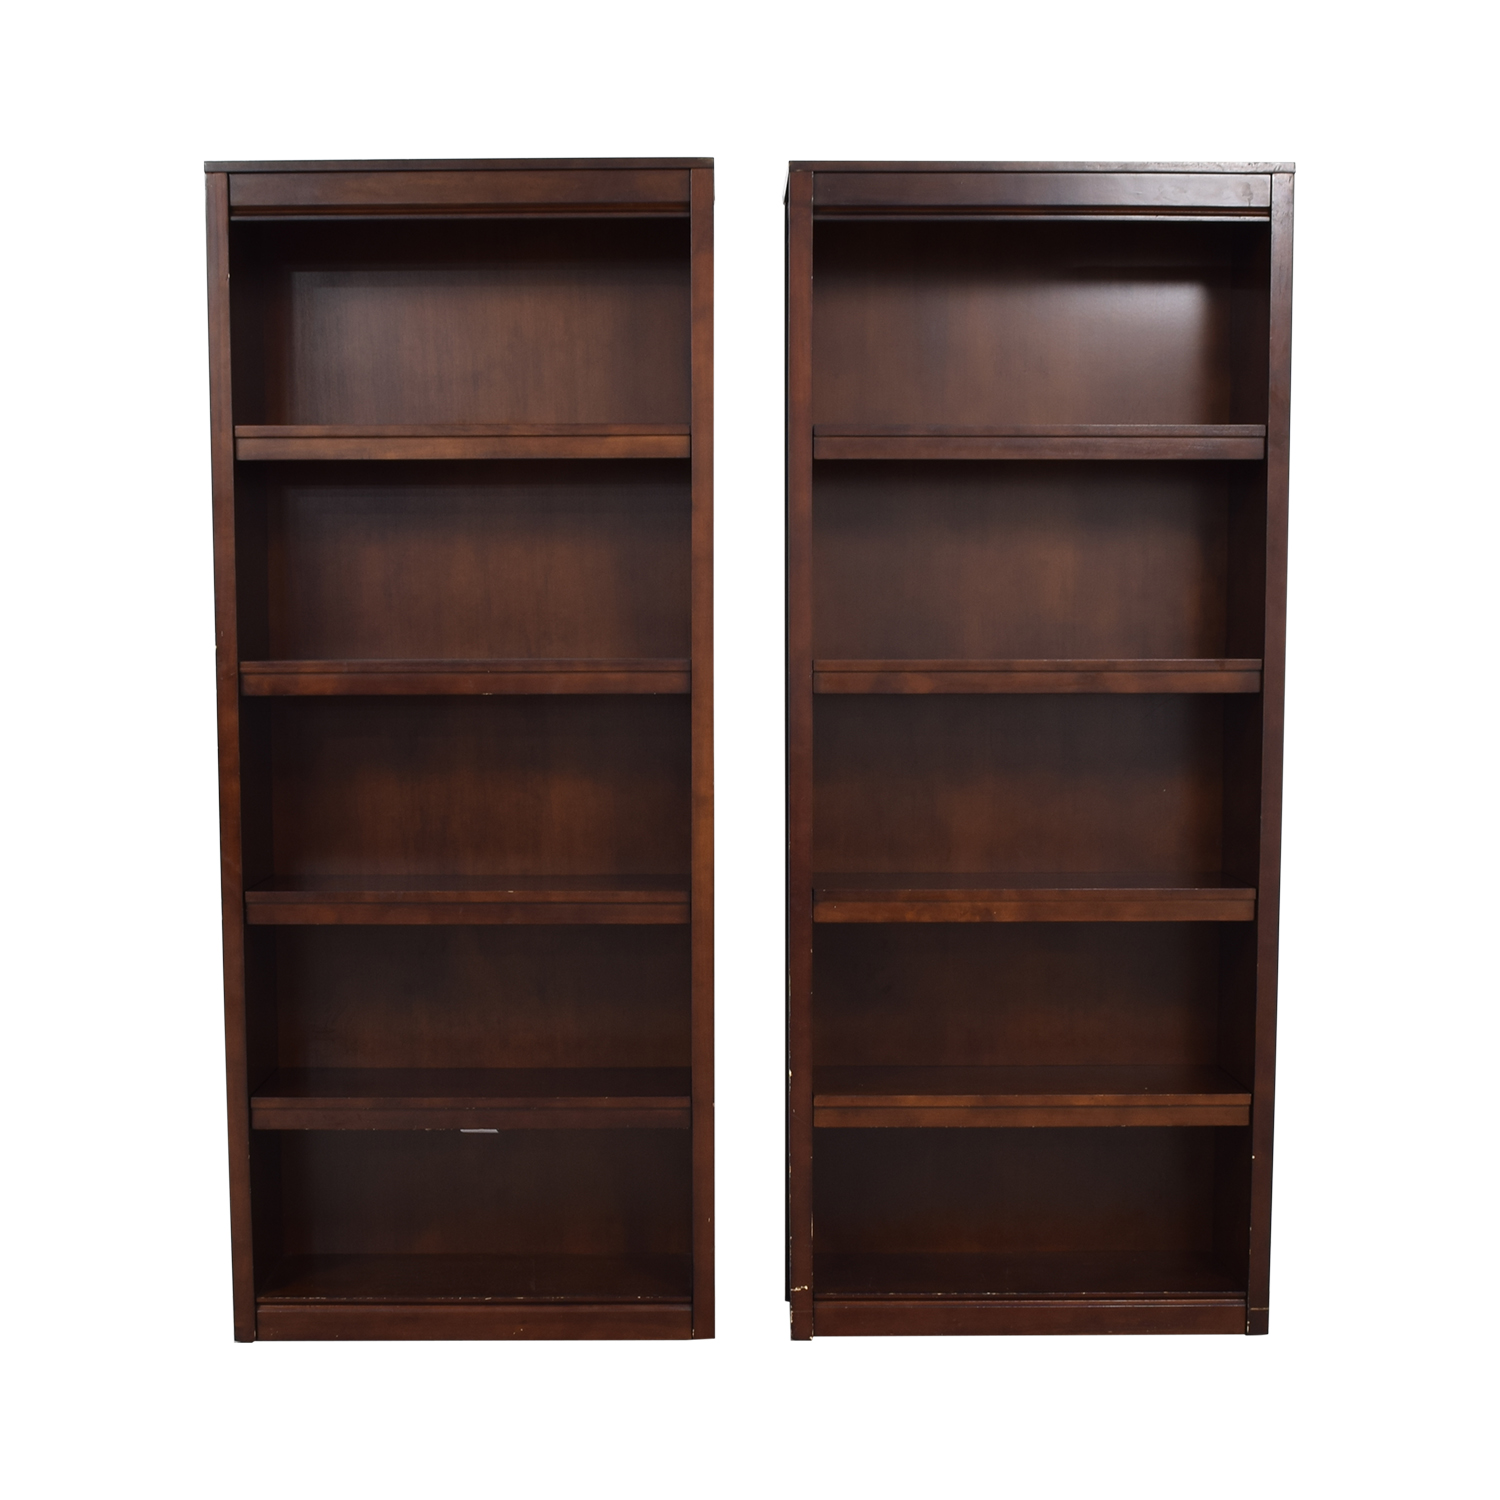 shop Crate & Barrel Payton Tobacco Bookshelves Crate & Barrel Storage